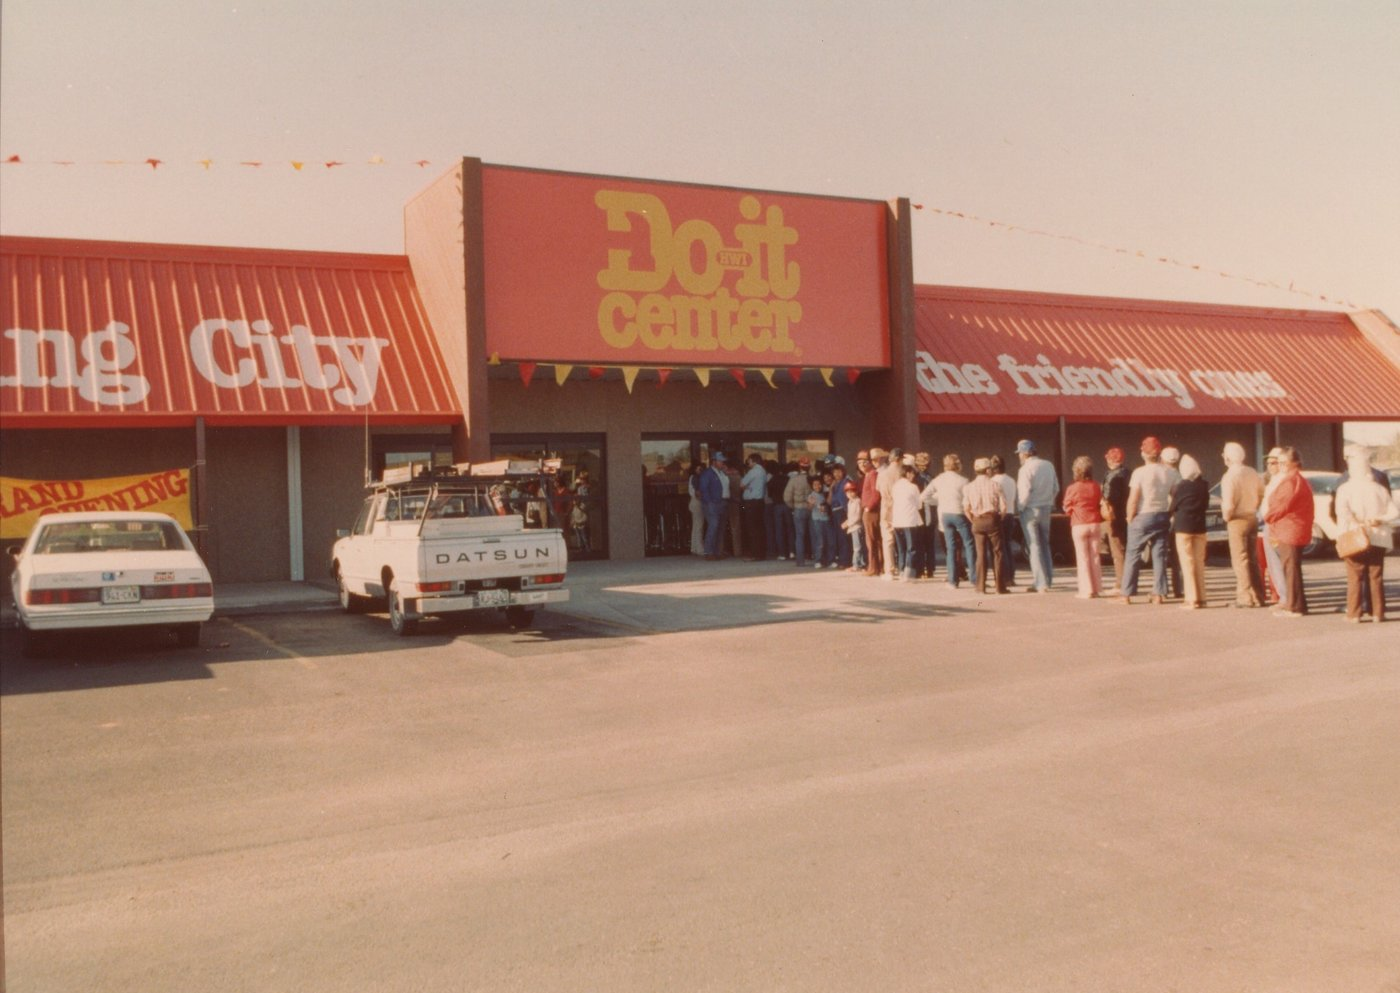 Spring City Do it center in Texas adopted the new Do it center format in 1986.